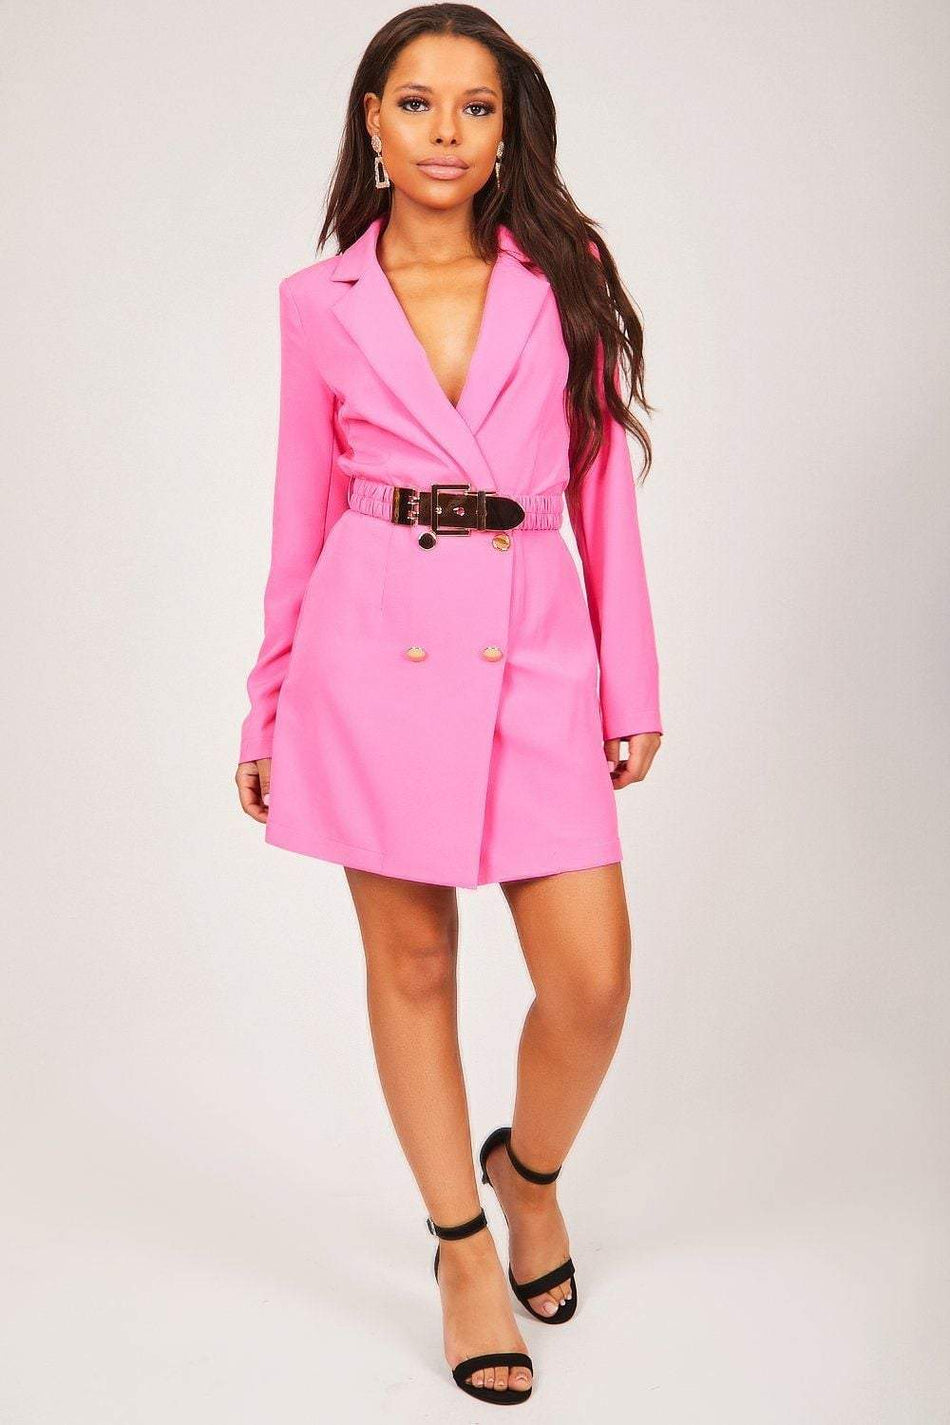 Hot Pink Blazer Dress With Gold Belt - KATCH ME